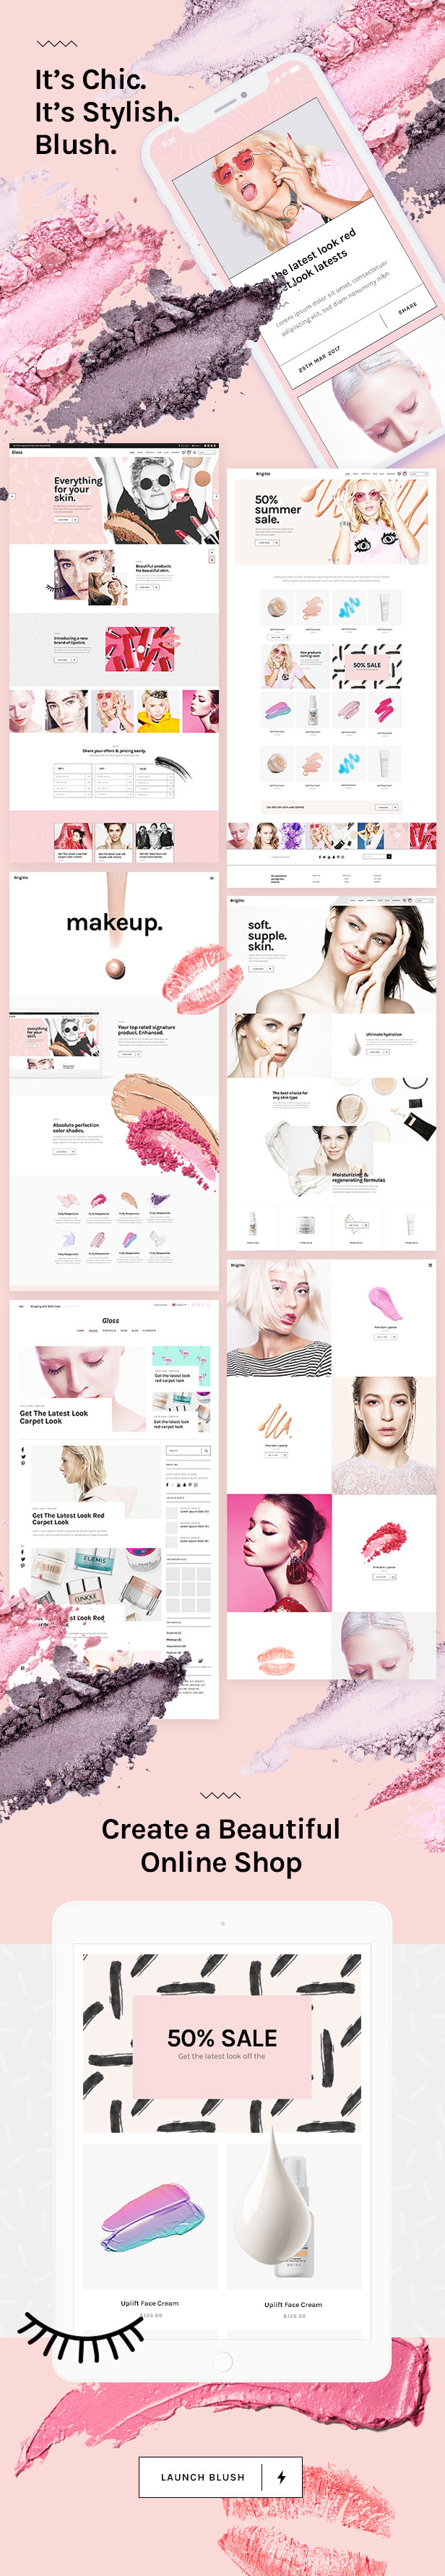 Latest Photo of  Blush A Trendy Beauty and Lifestyle Theme